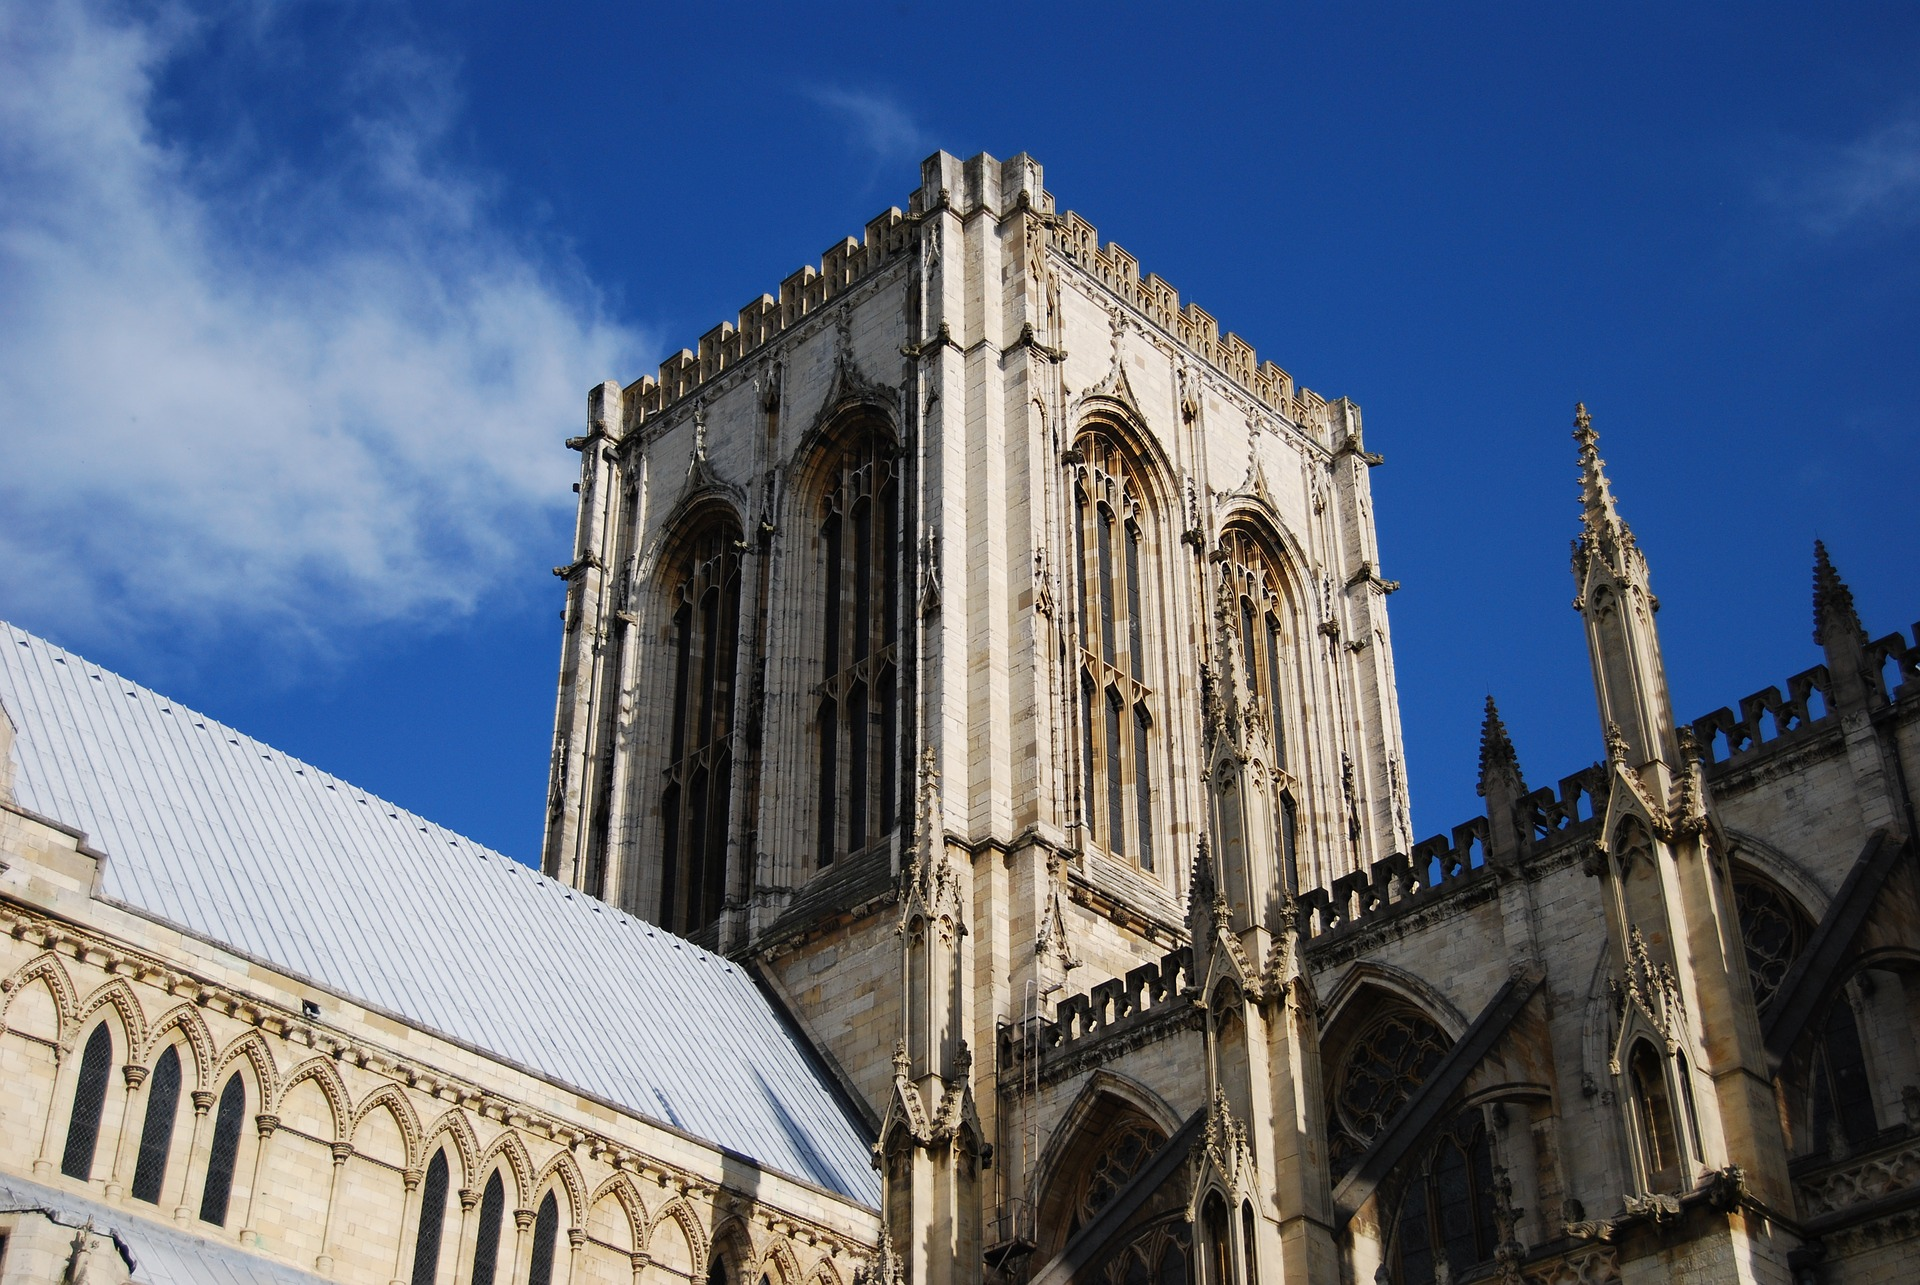 york minster, best things to do in york, york itinerary, stuff to do in york, what to do around york, york castle, cliffords tower